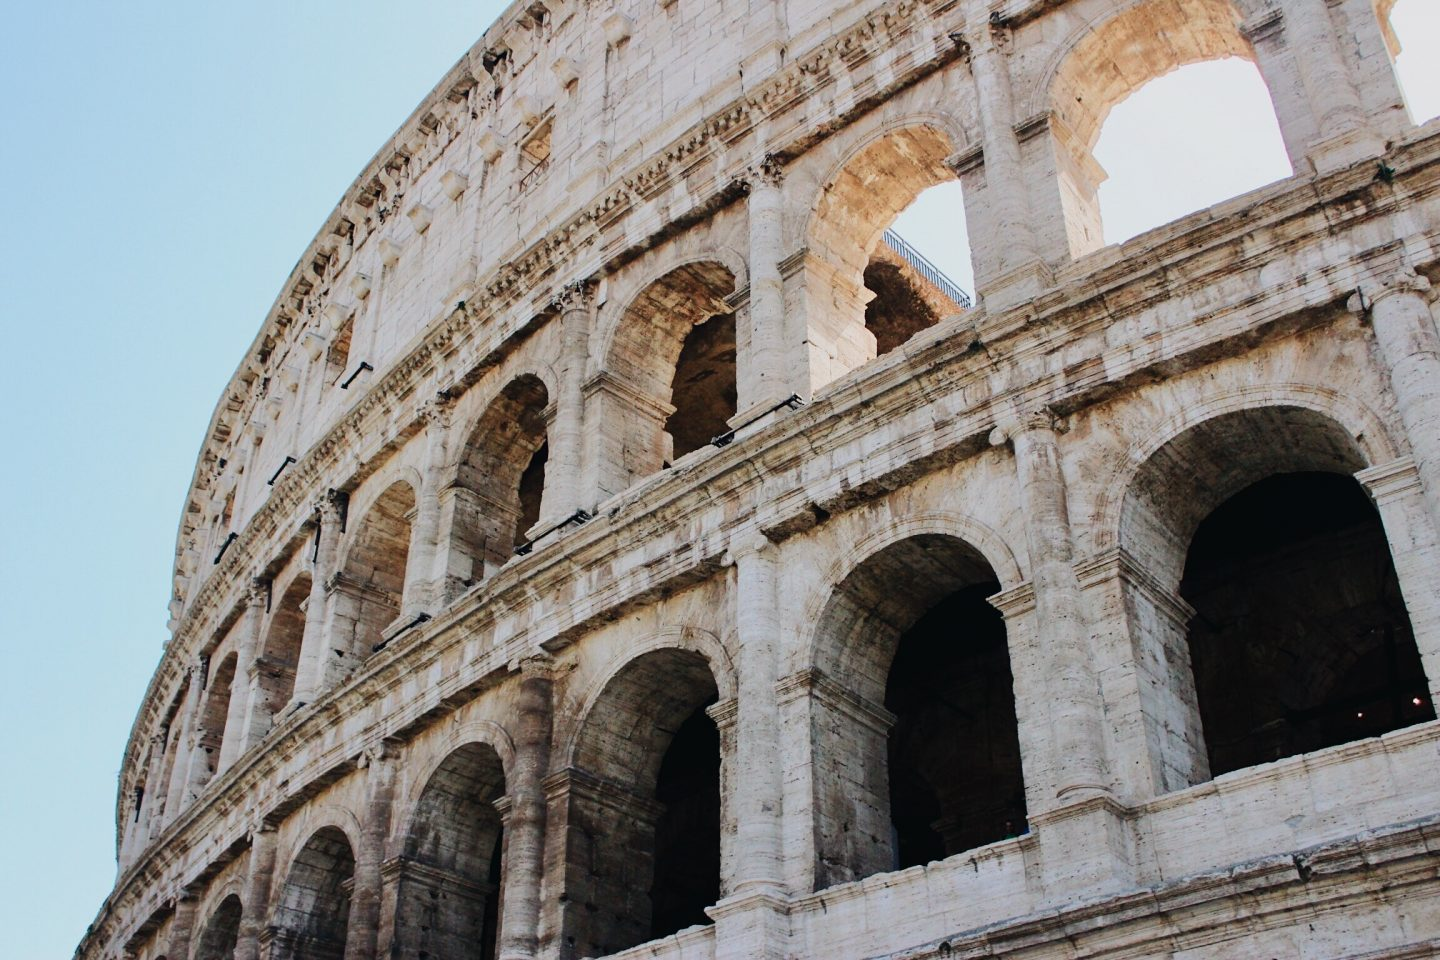 Photo of the Colosseum's exterior during one day in Rome